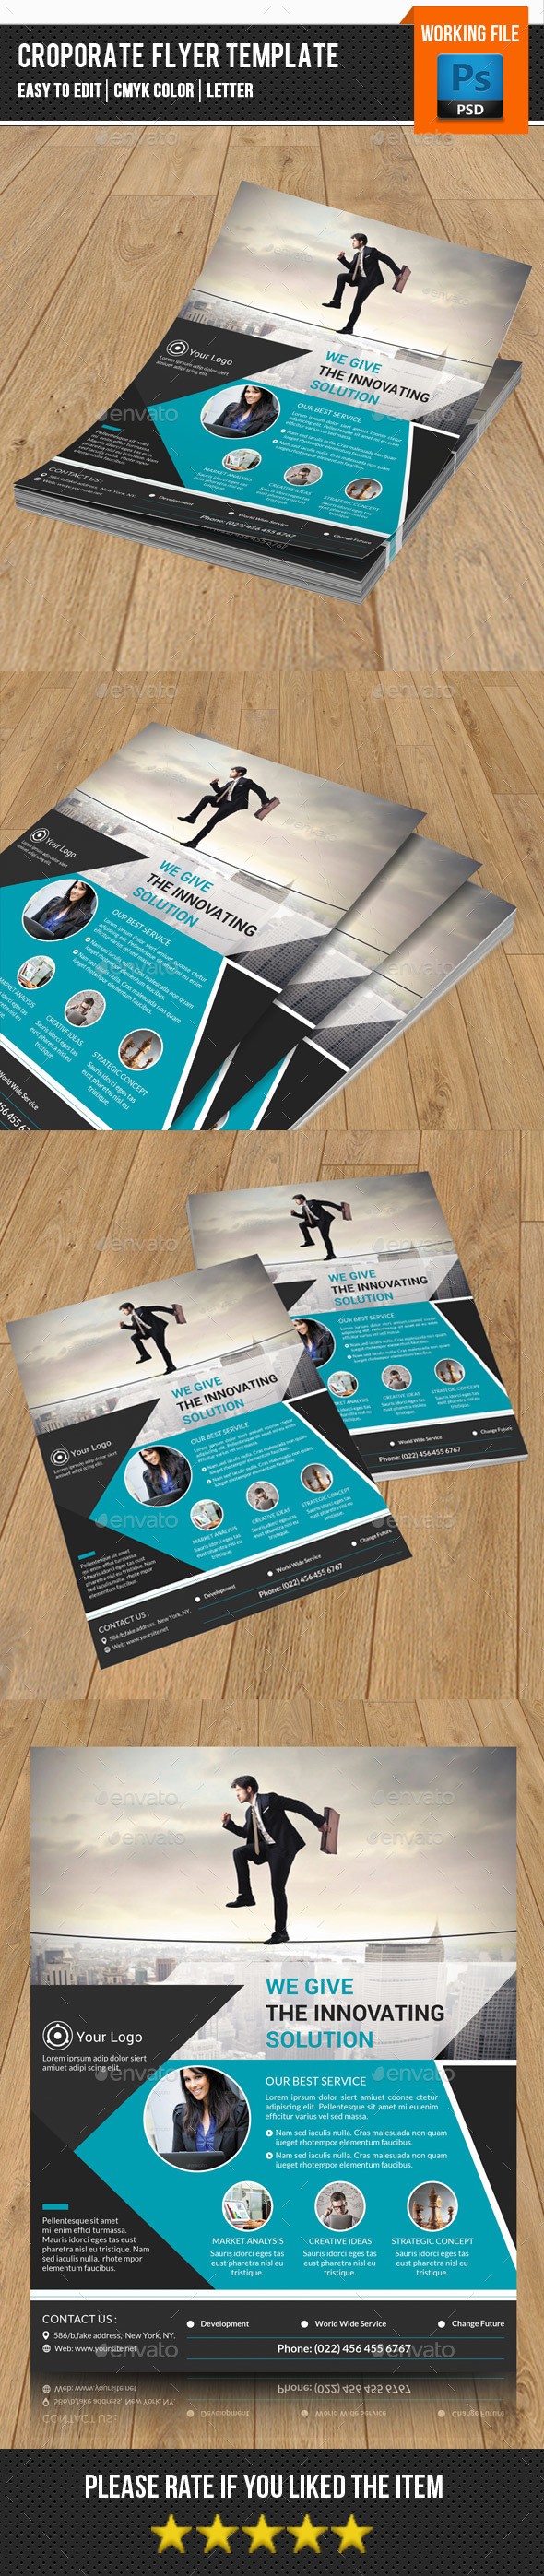 Corporate Flyer Template-V127 - Corporate Flyers